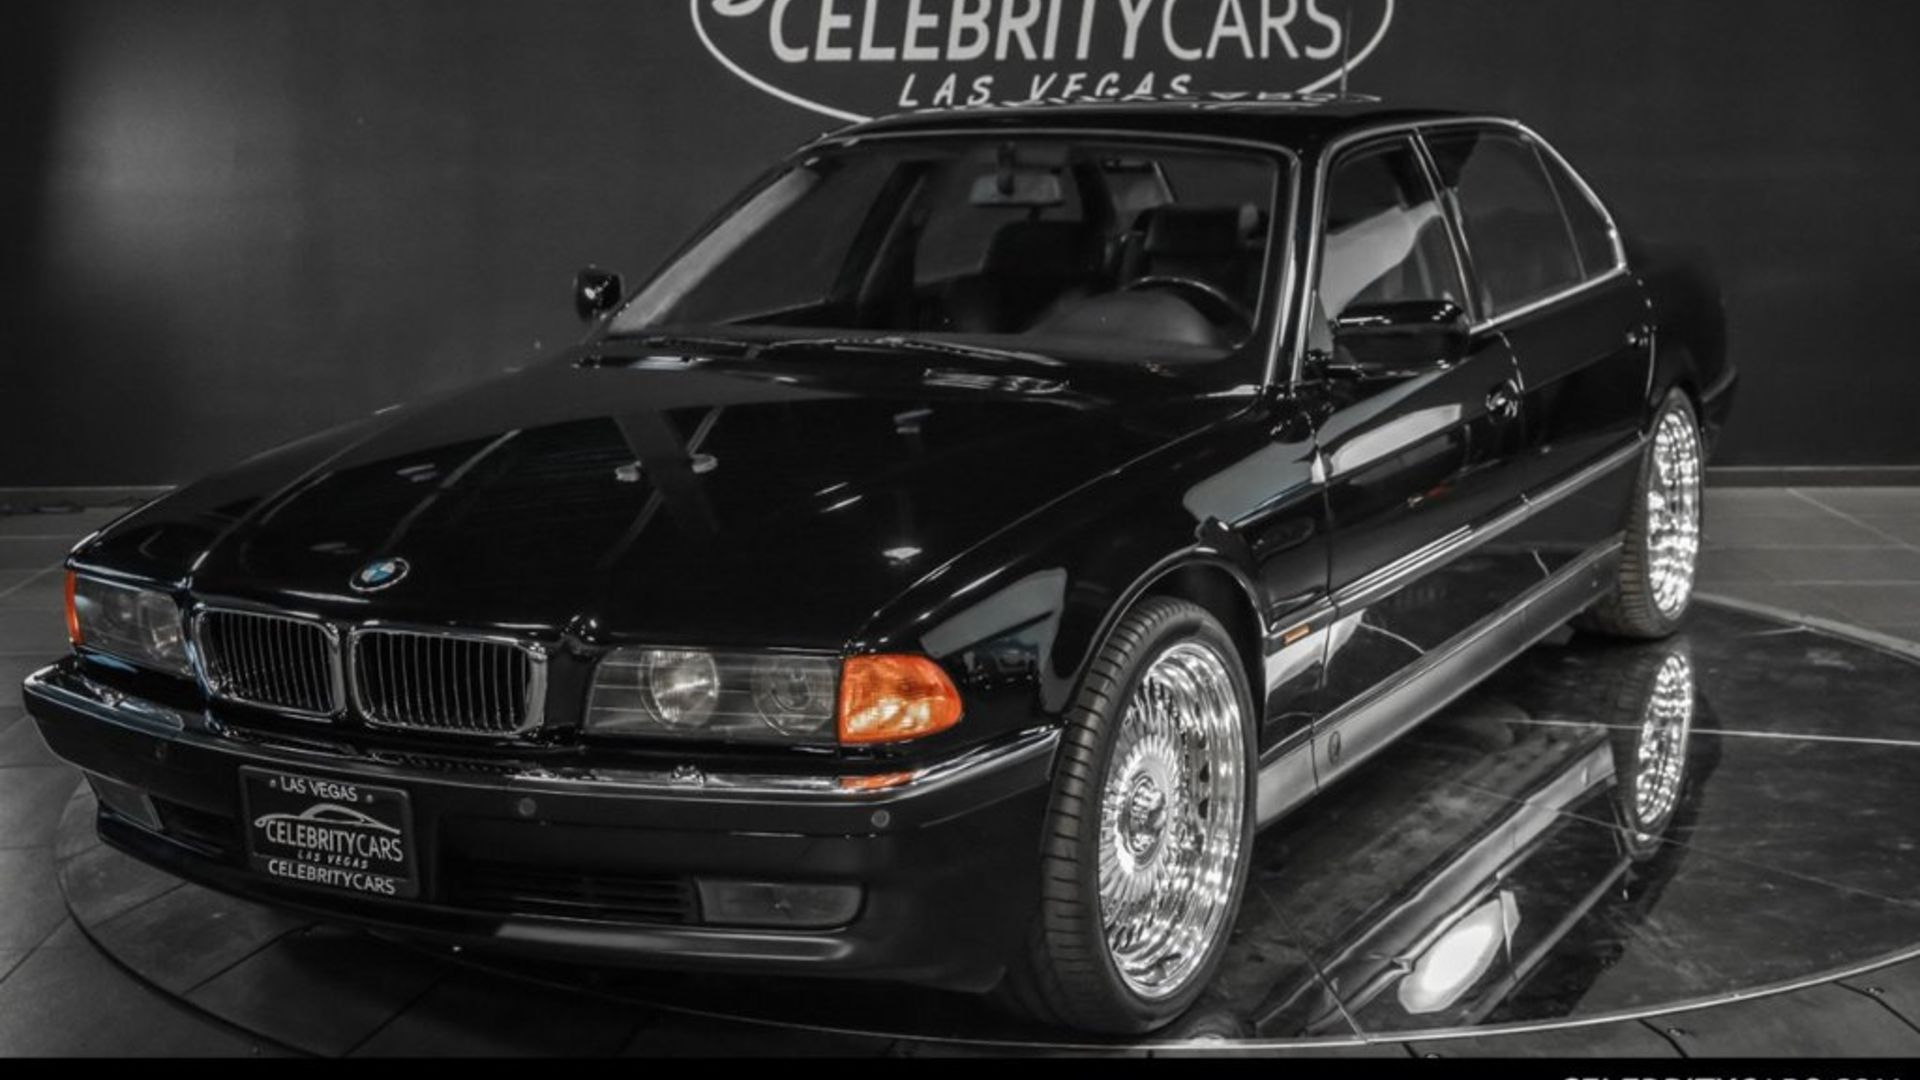 Yours For 13 Million The Bmw That Rapper Tupac Was Shot In